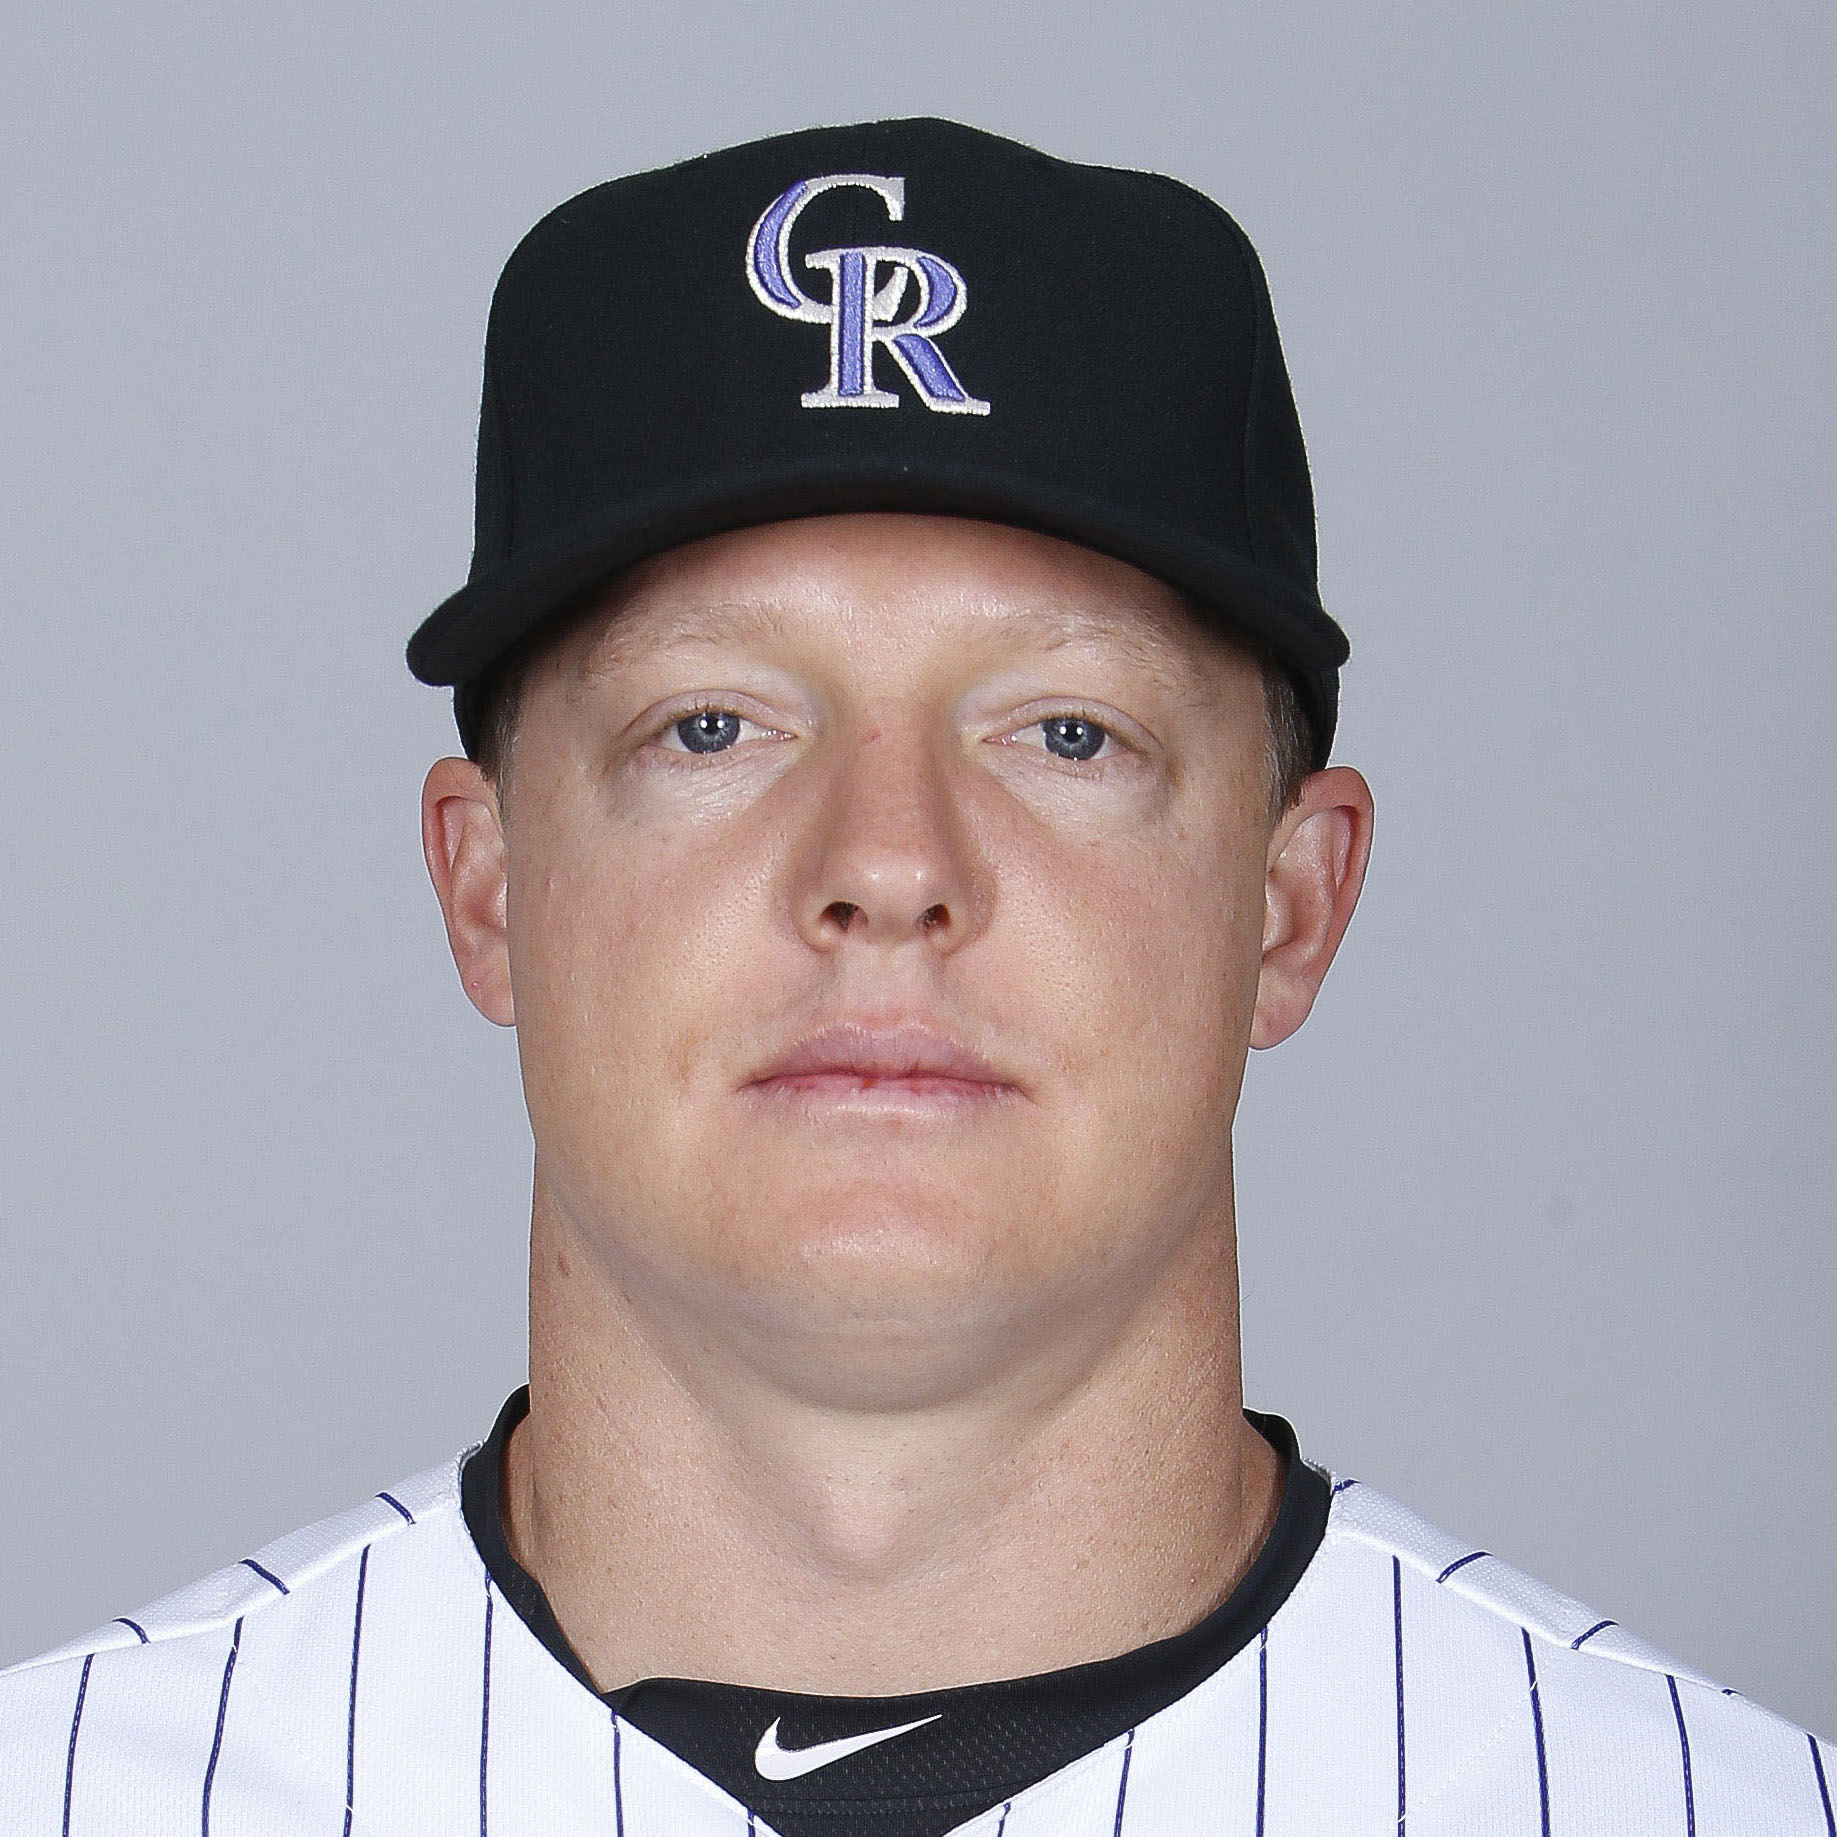 Nick Hundley Headshot